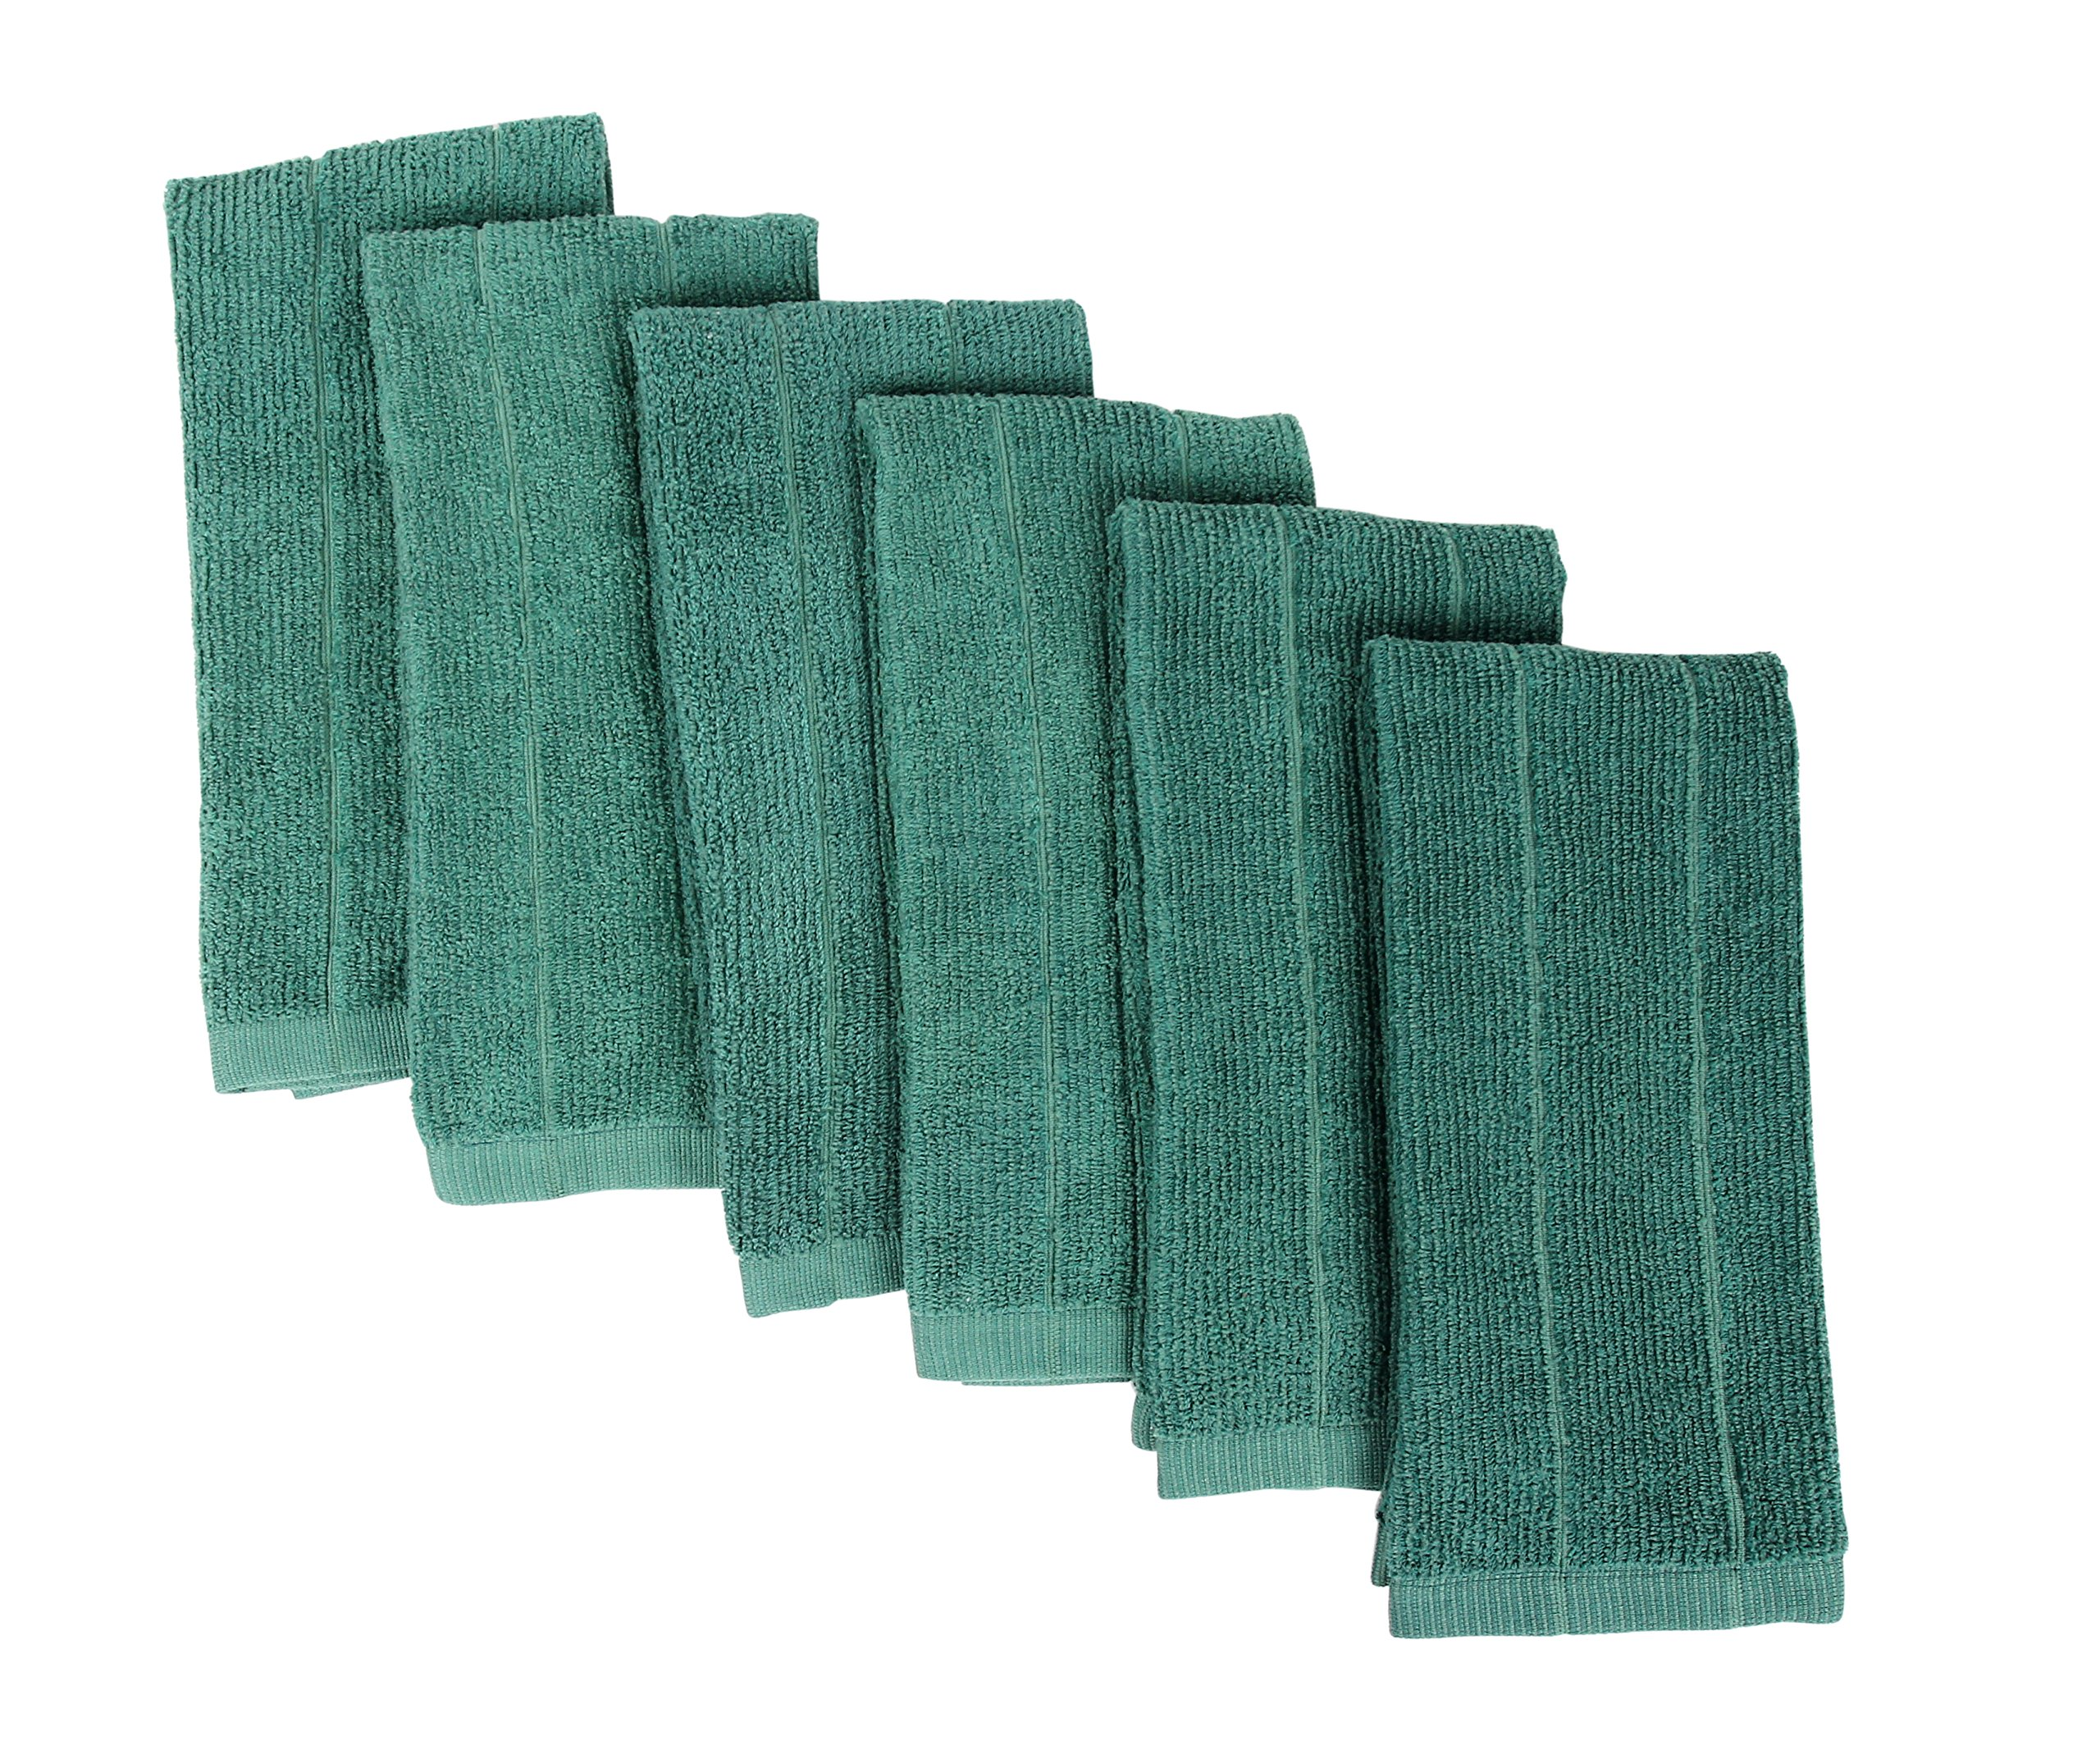 Fabbrica Home Rayon Made From Bamboo Kitchen Drying Towels Patented Everplush Technology (6, Green)